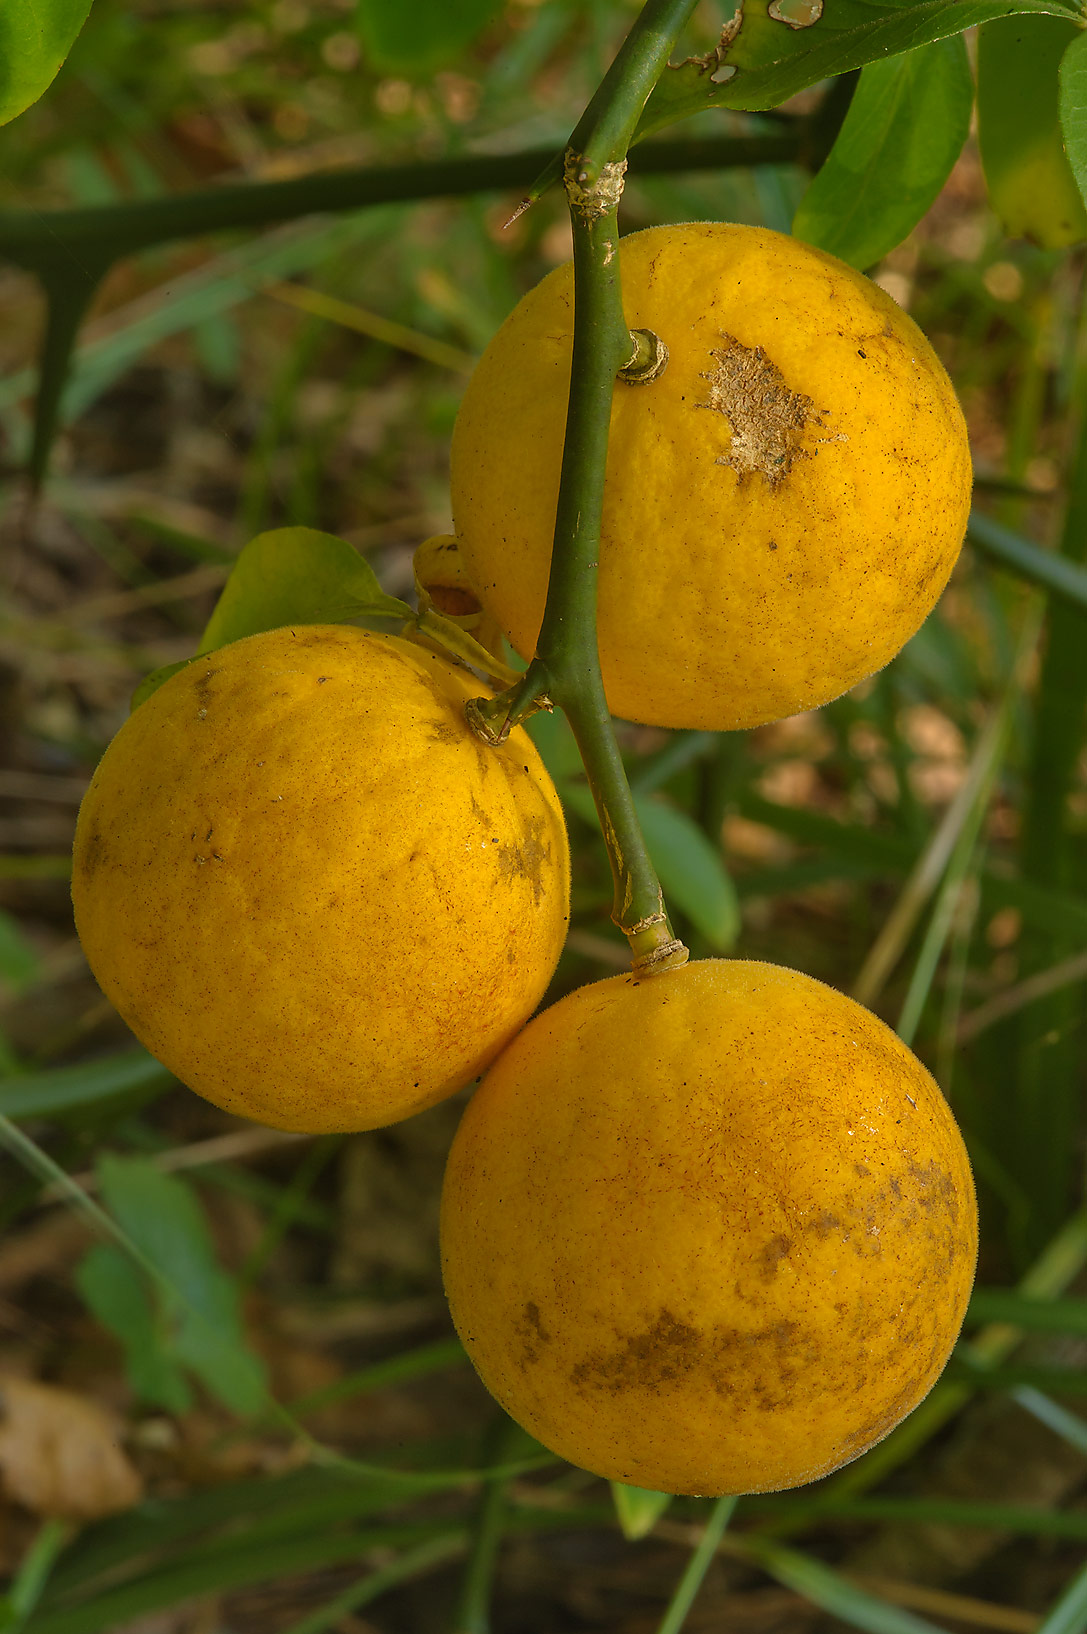 Wild citrus fruits of Trifoliate orange (Poncirus...National Forest near Huntsville, Texas